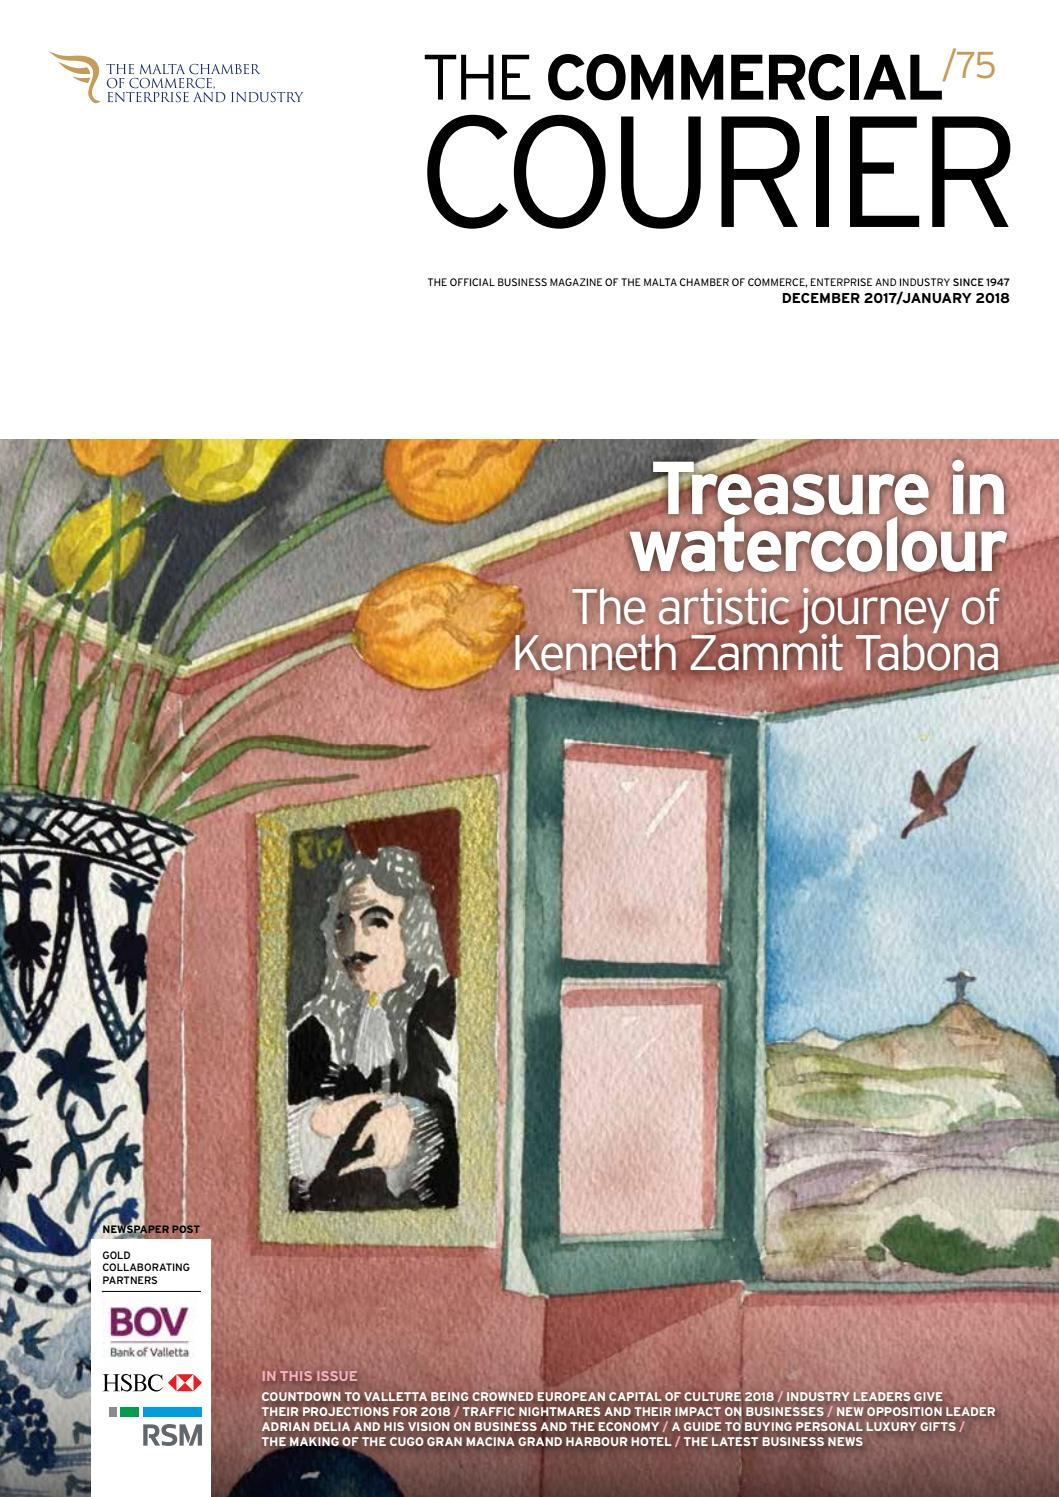 df036b8944f6fe The Commercial Courier December 2017/January 2018 by Content House Group -  issuu